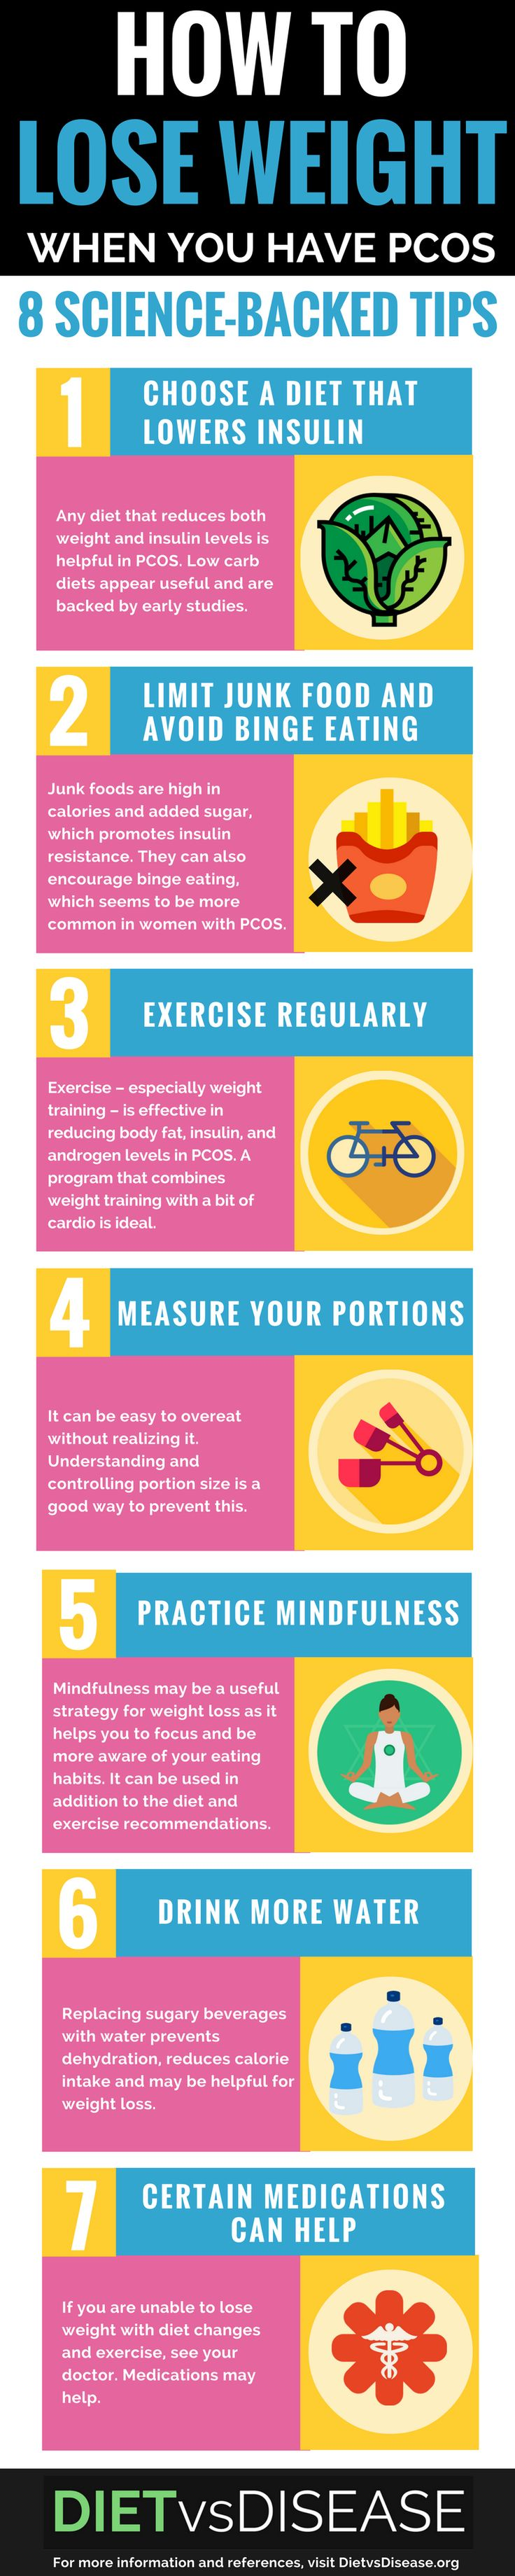 PCOS (polycystic ovary syndrome) is a common hormonal disorder that affects up to 20% of pre-menopausal women. One of the most common symptoms is weight gain. In fact, 39% of women with PCOS are overweight or obese. Fortunately, a few lifestyle changes can help you to balance hormones and lose weight. This article looks at 8 tips for losing weight when you have PCOS: https://www.dietvsdisease.org/lose-weight-pcos/